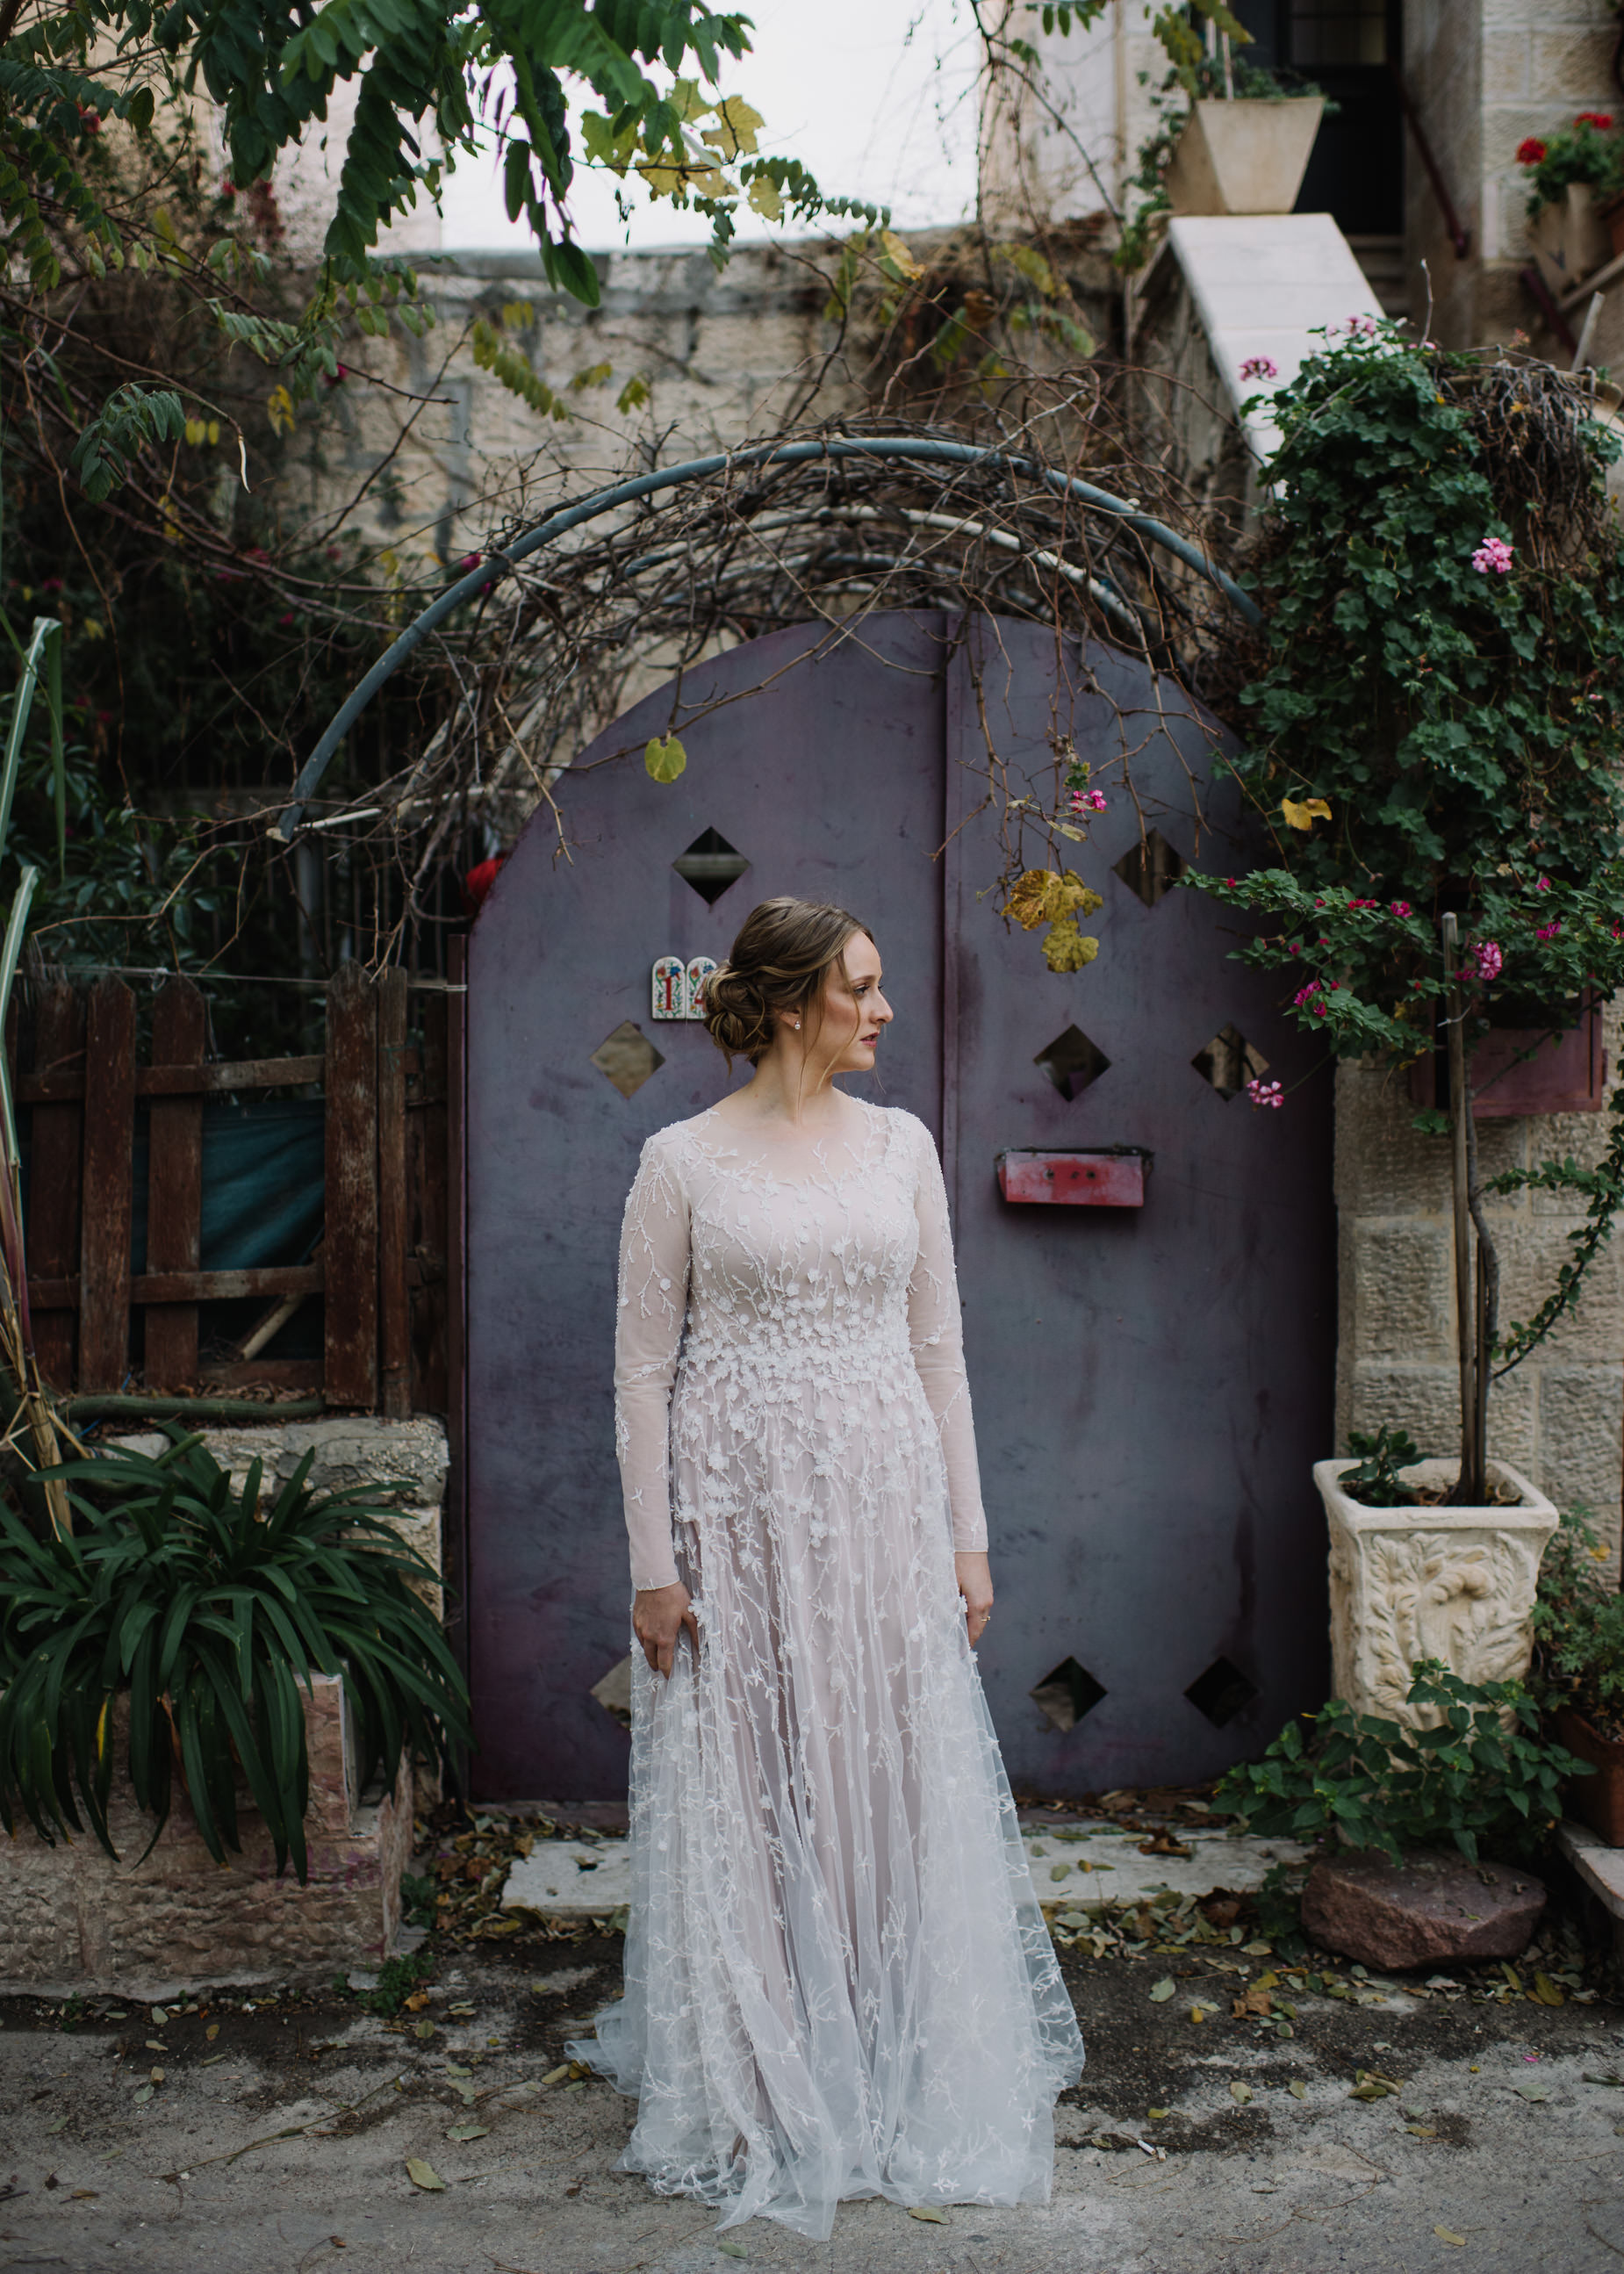 Jewish Bride in Jerusalem alley way